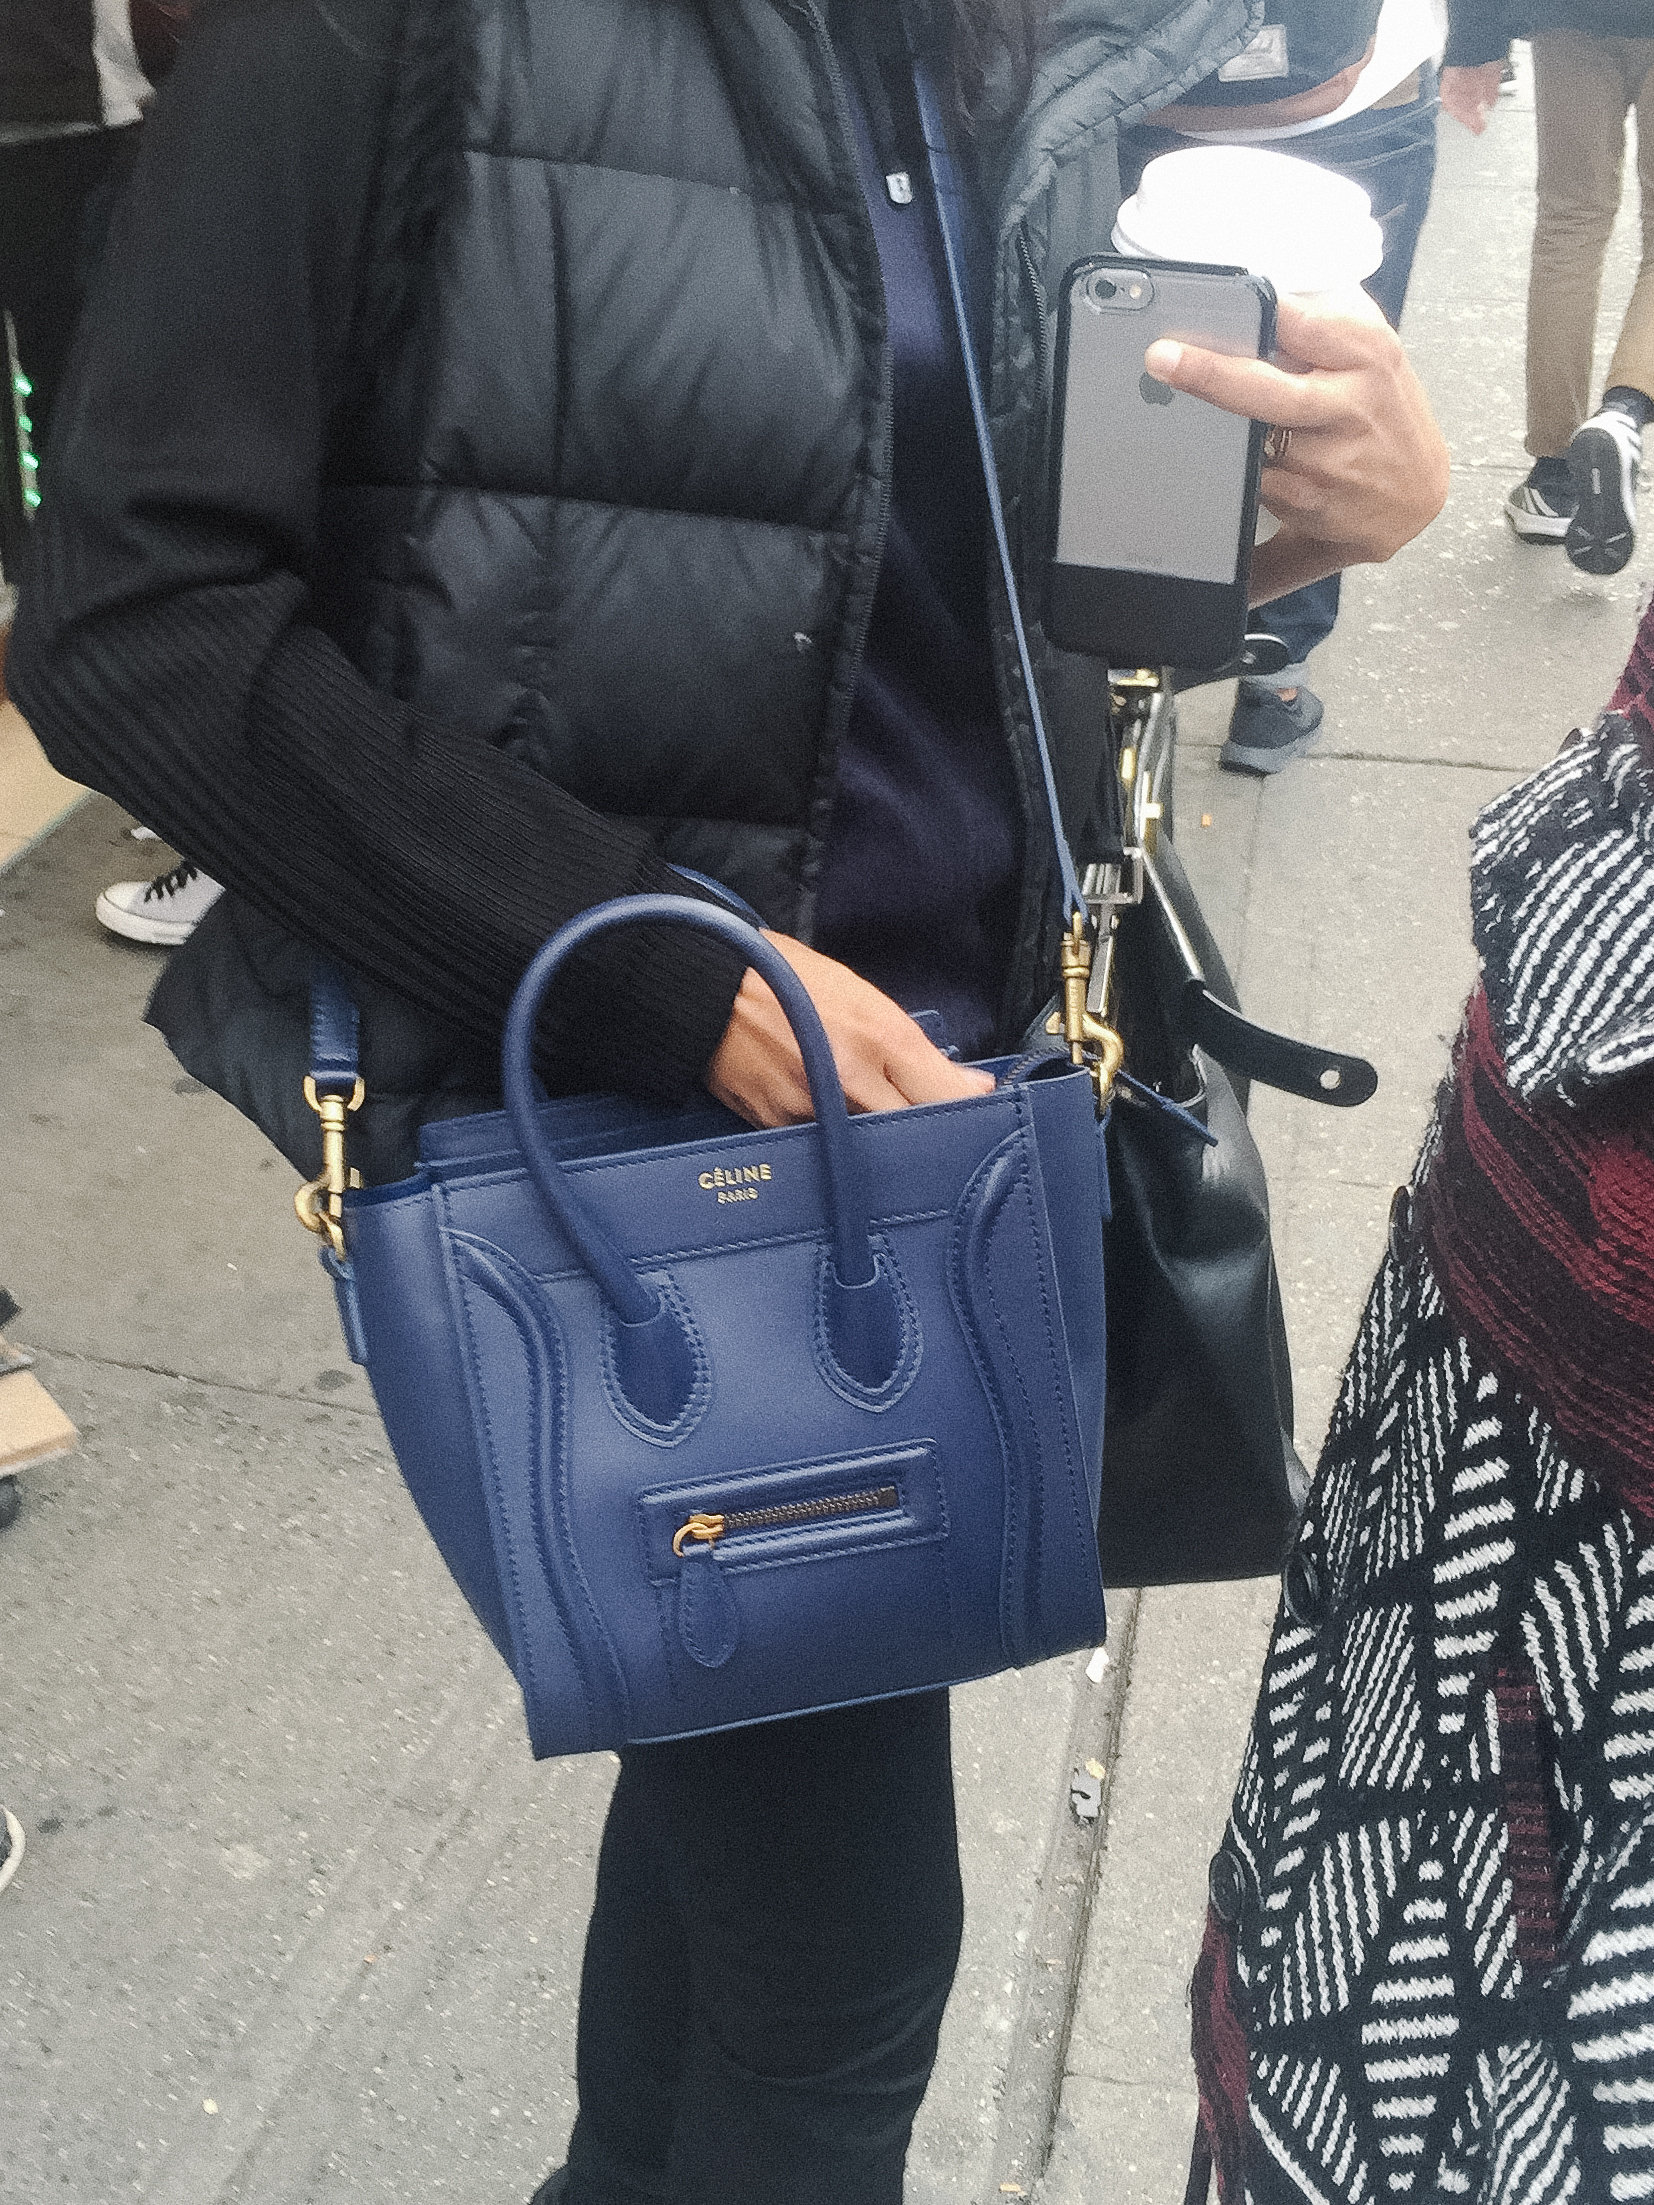 I got it! The Celine Nano Luggage bag. But clearly it's fake. Below are five ways you can tell if a Nano is fake or the real deal.